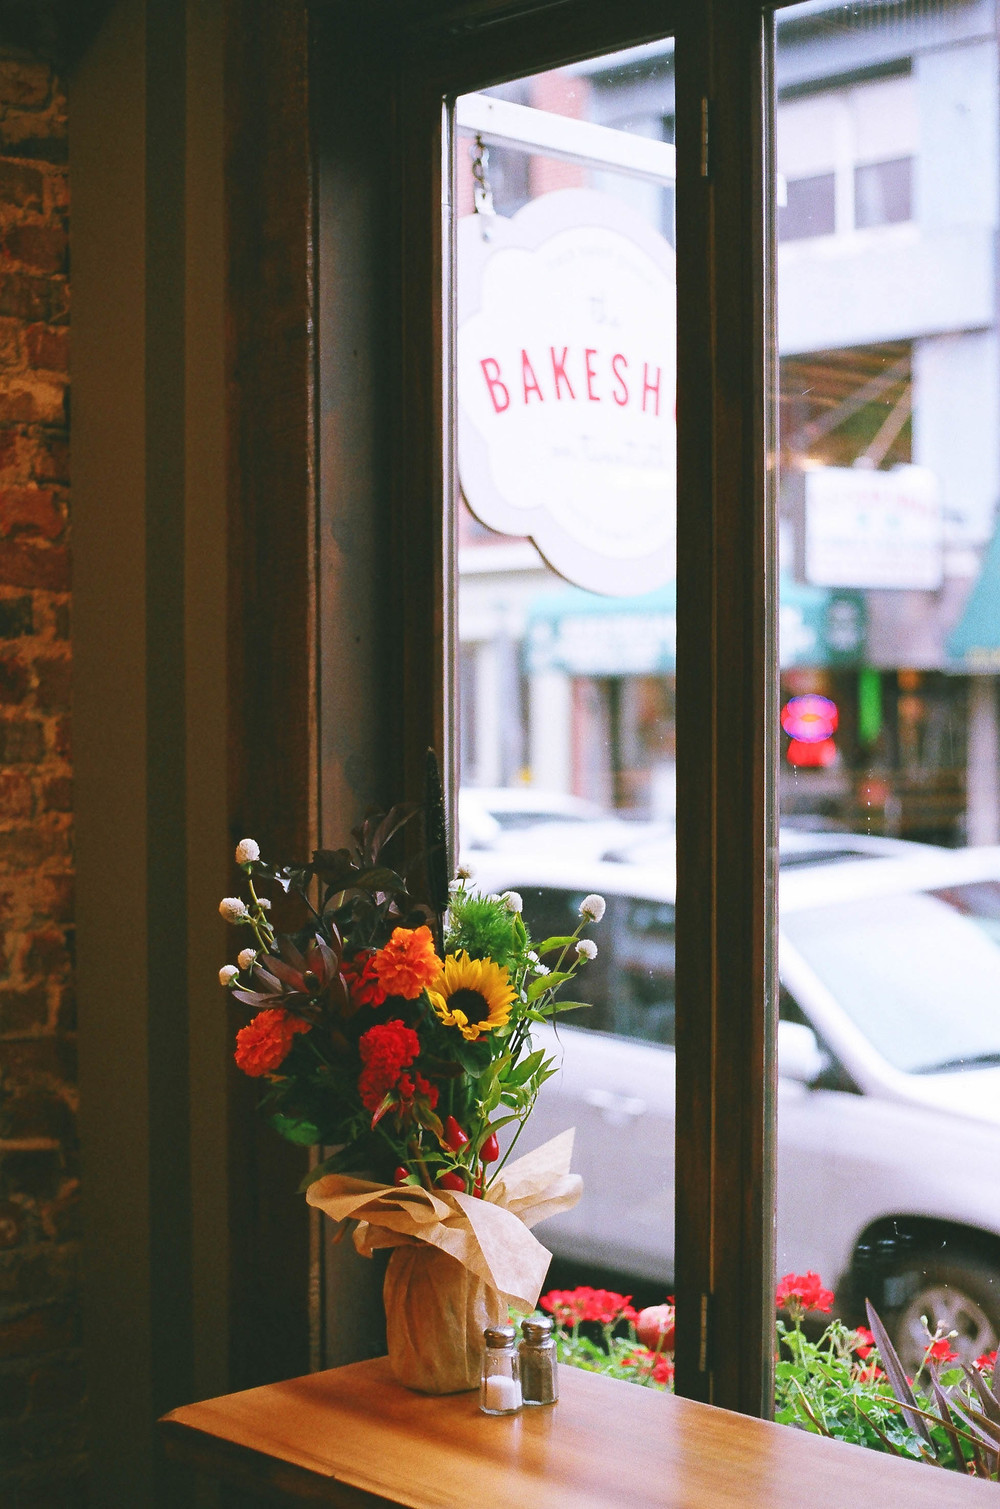 philadelphia bakeshop twentieth flowers autumn windows midtown village korrelatik.jpg